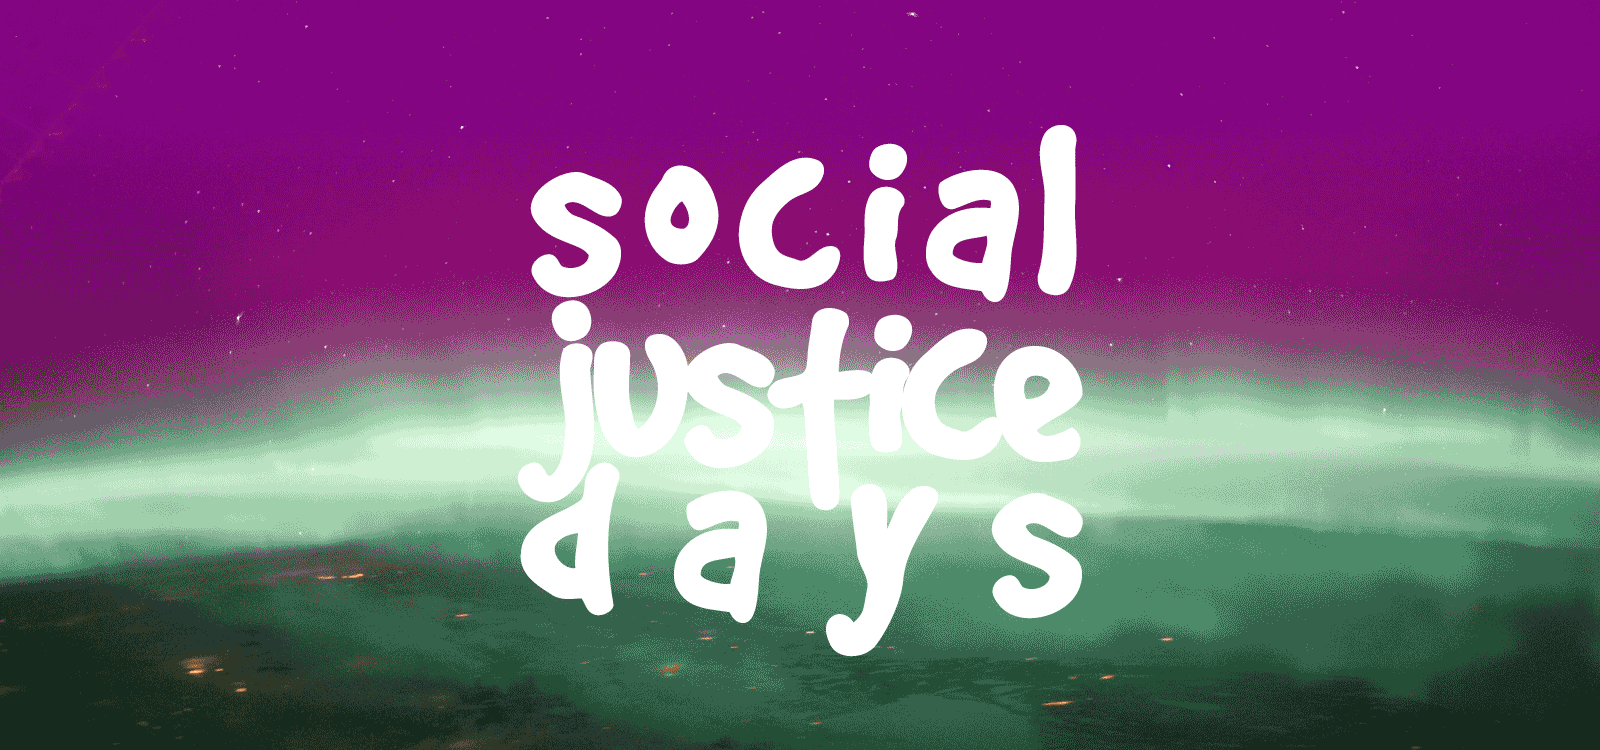 Social Justice Days 2015: 10 Year Anniversary!